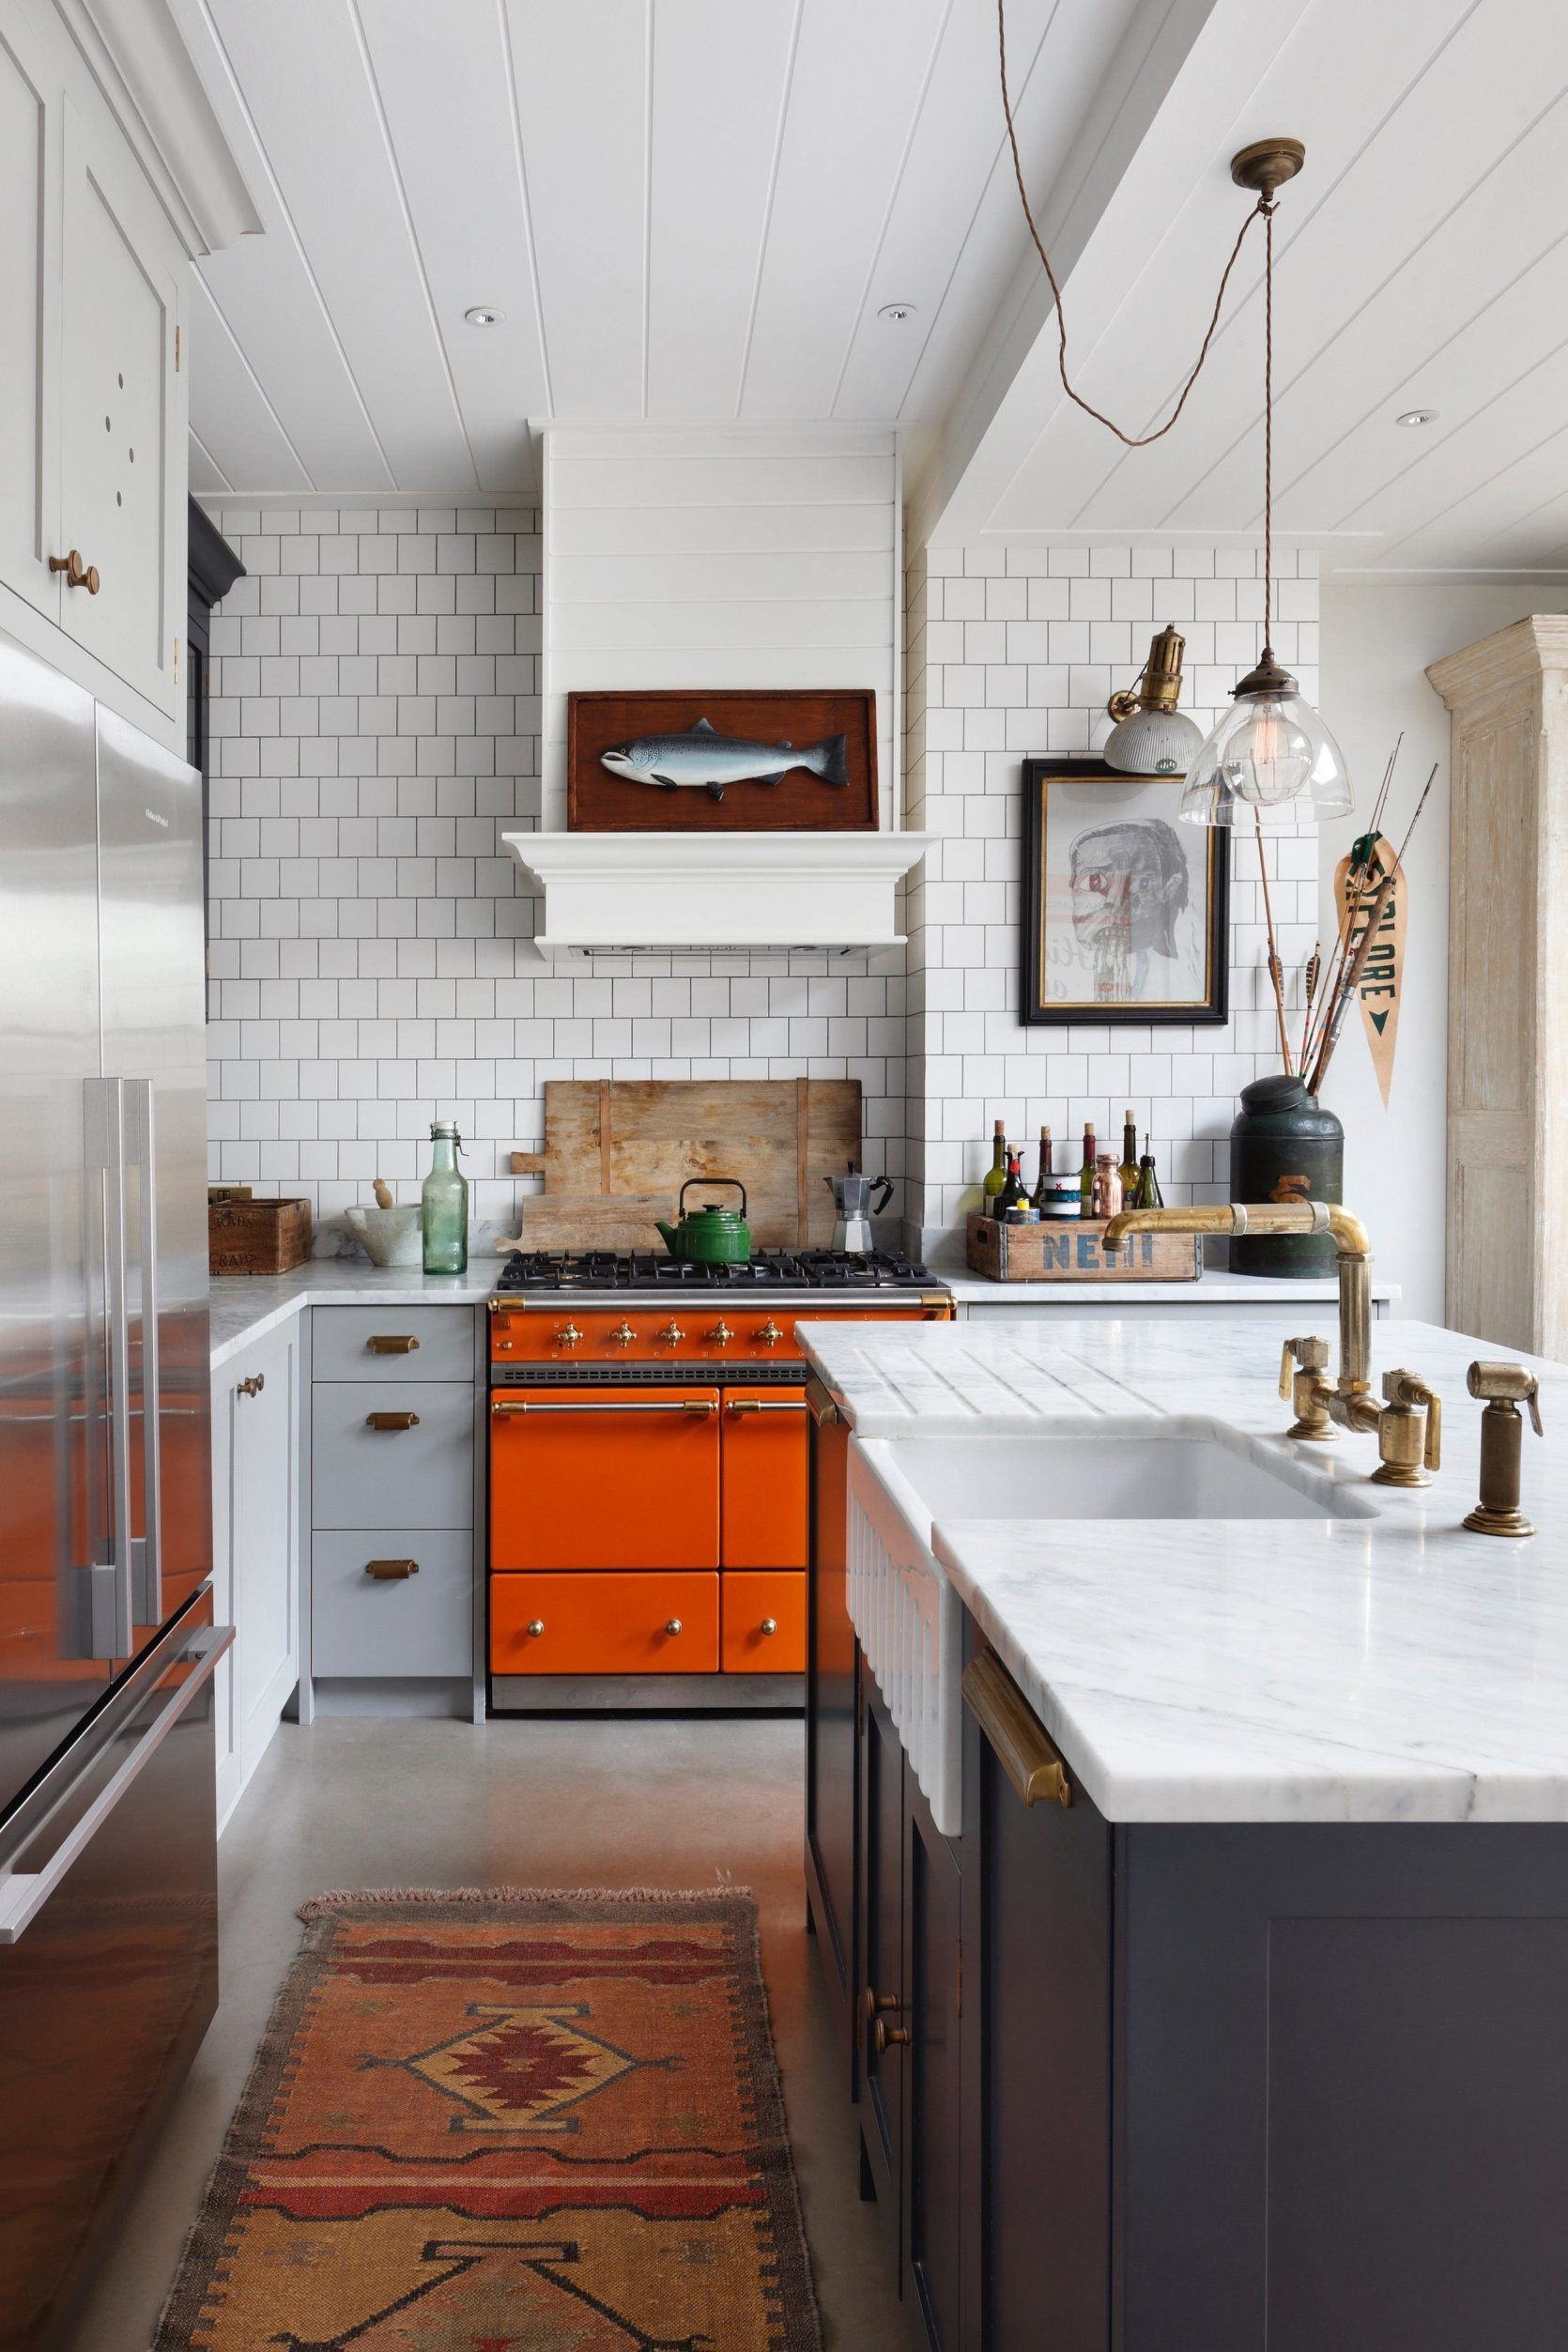 Best 9 Kitchen Trends For 2019 We Re Betting Will Be Huge 640 x 480